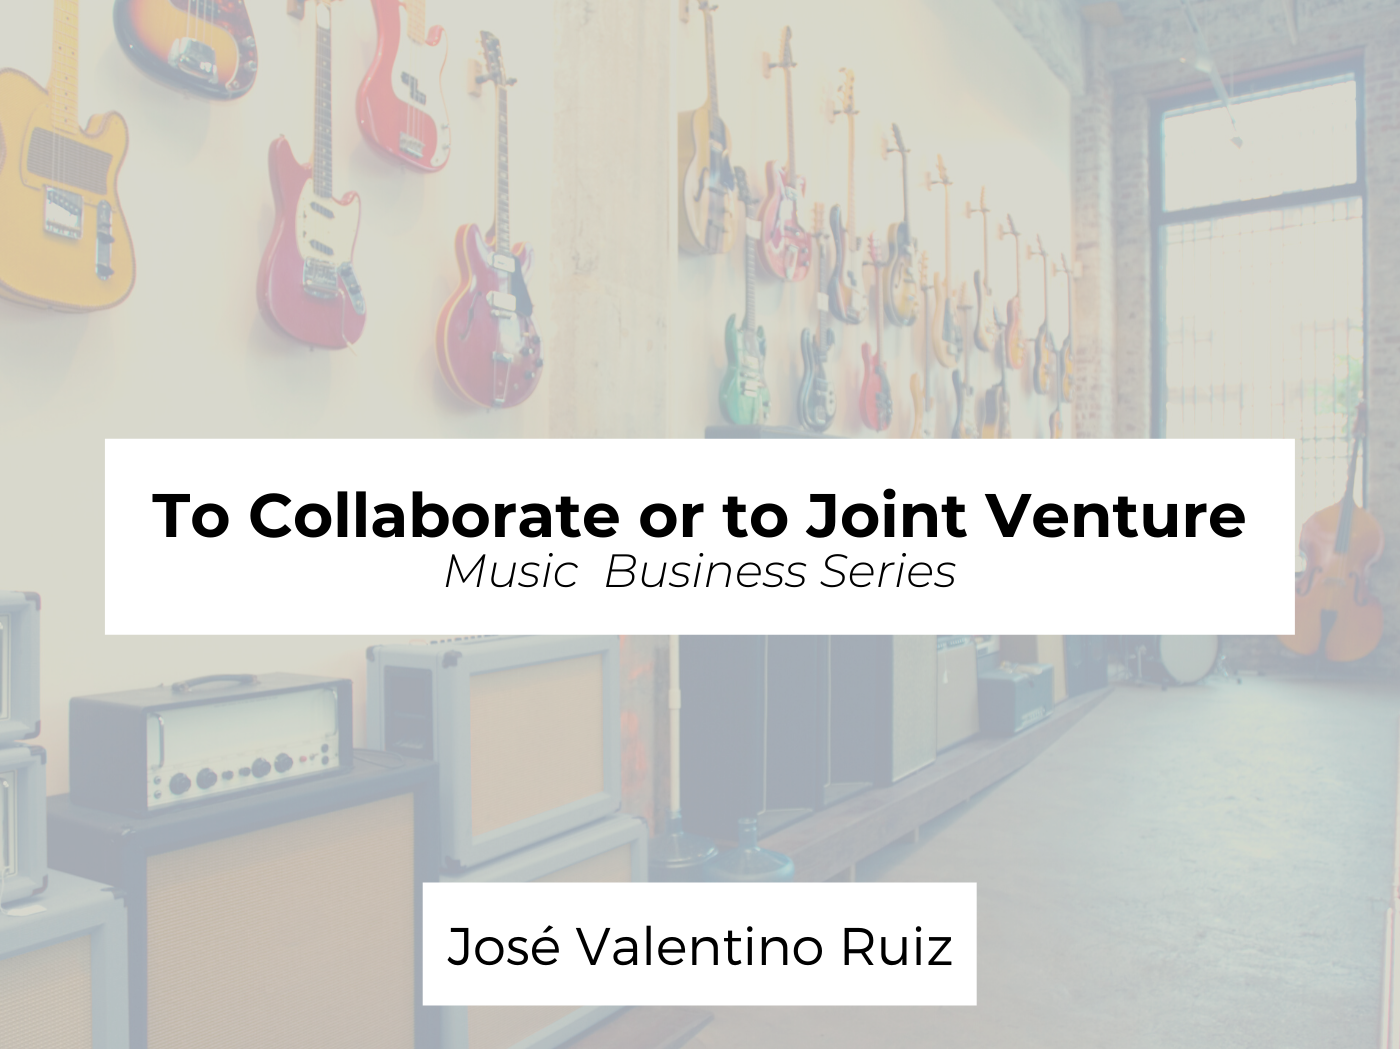 to collaborate or joint venture